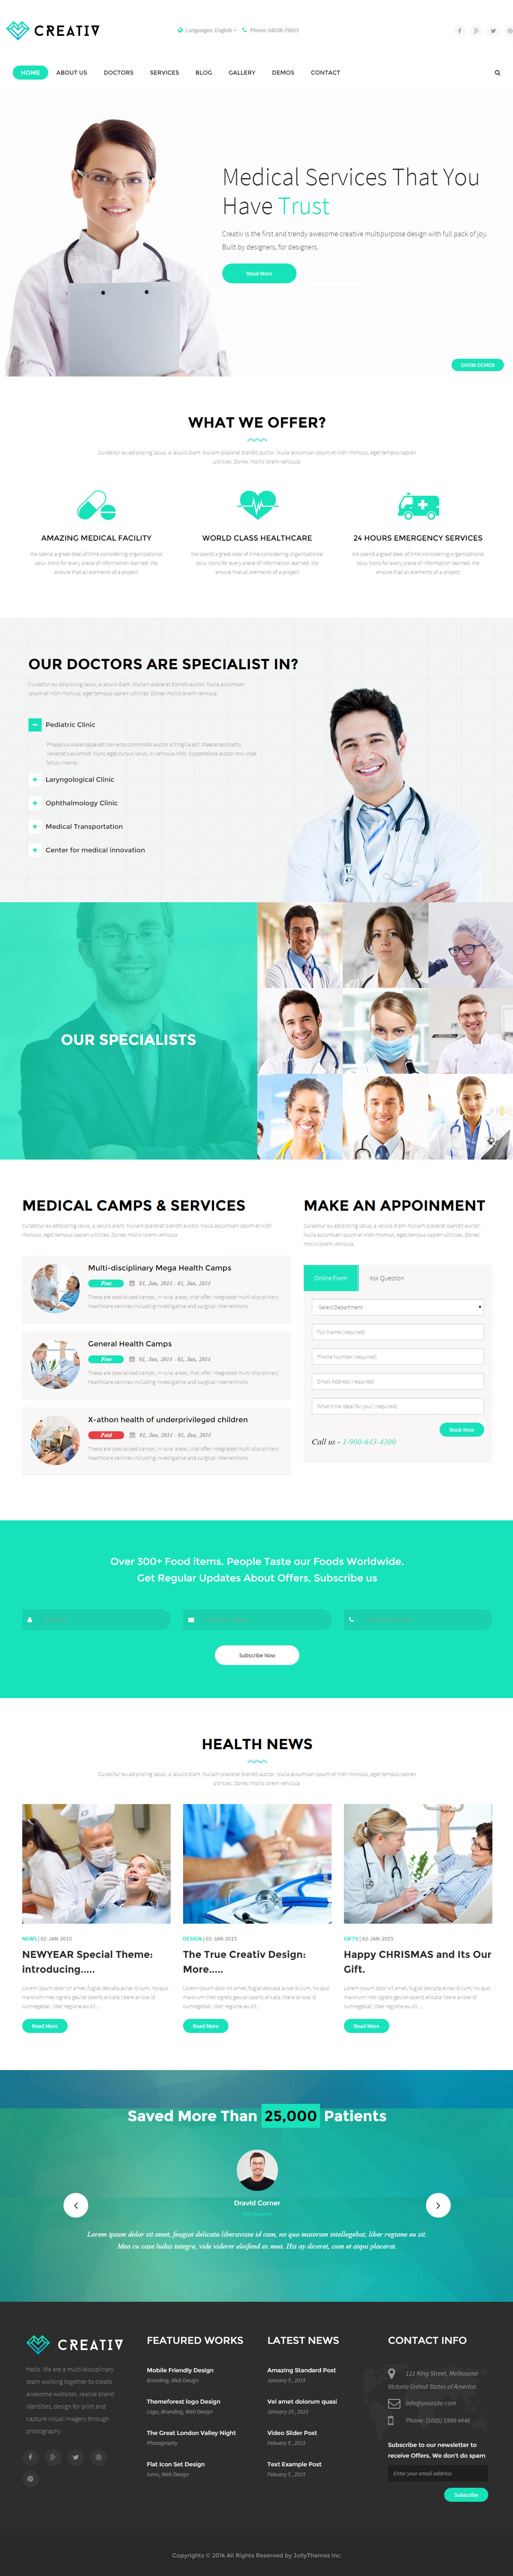 15 Best Responsive Medical Healthcare Html5 Templates 2017 0